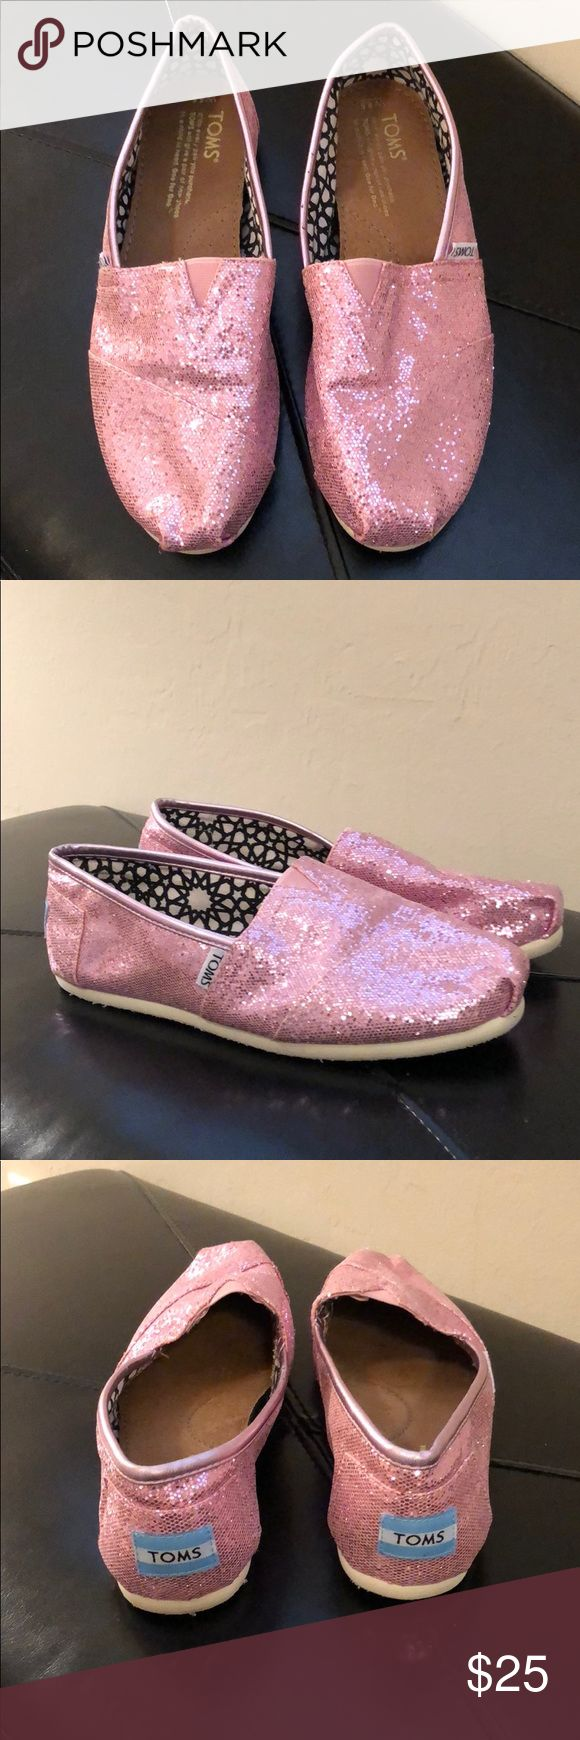 Toms pink sparkly flats Worn only a few times, in good condition. Sparkly pink Toms Shoes Flats & Loafers